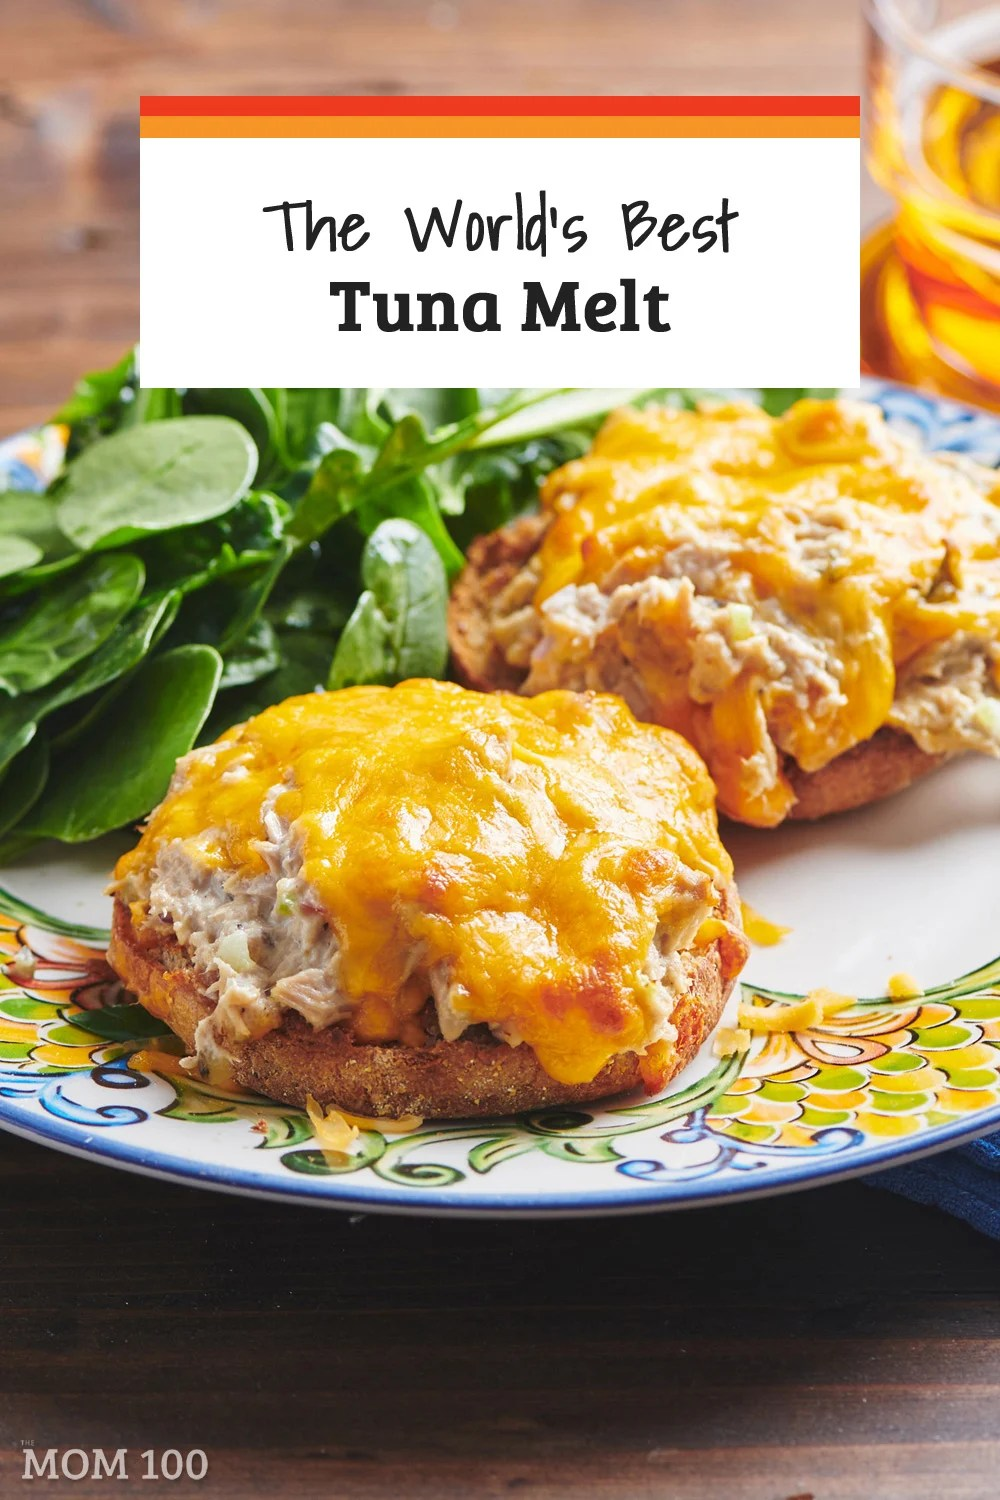 The World's Best Tuna Melt: Start with great tunafish salad, pile it onto a toasted English muffin, top with cheese and broil for one of the best sandwiches ever.